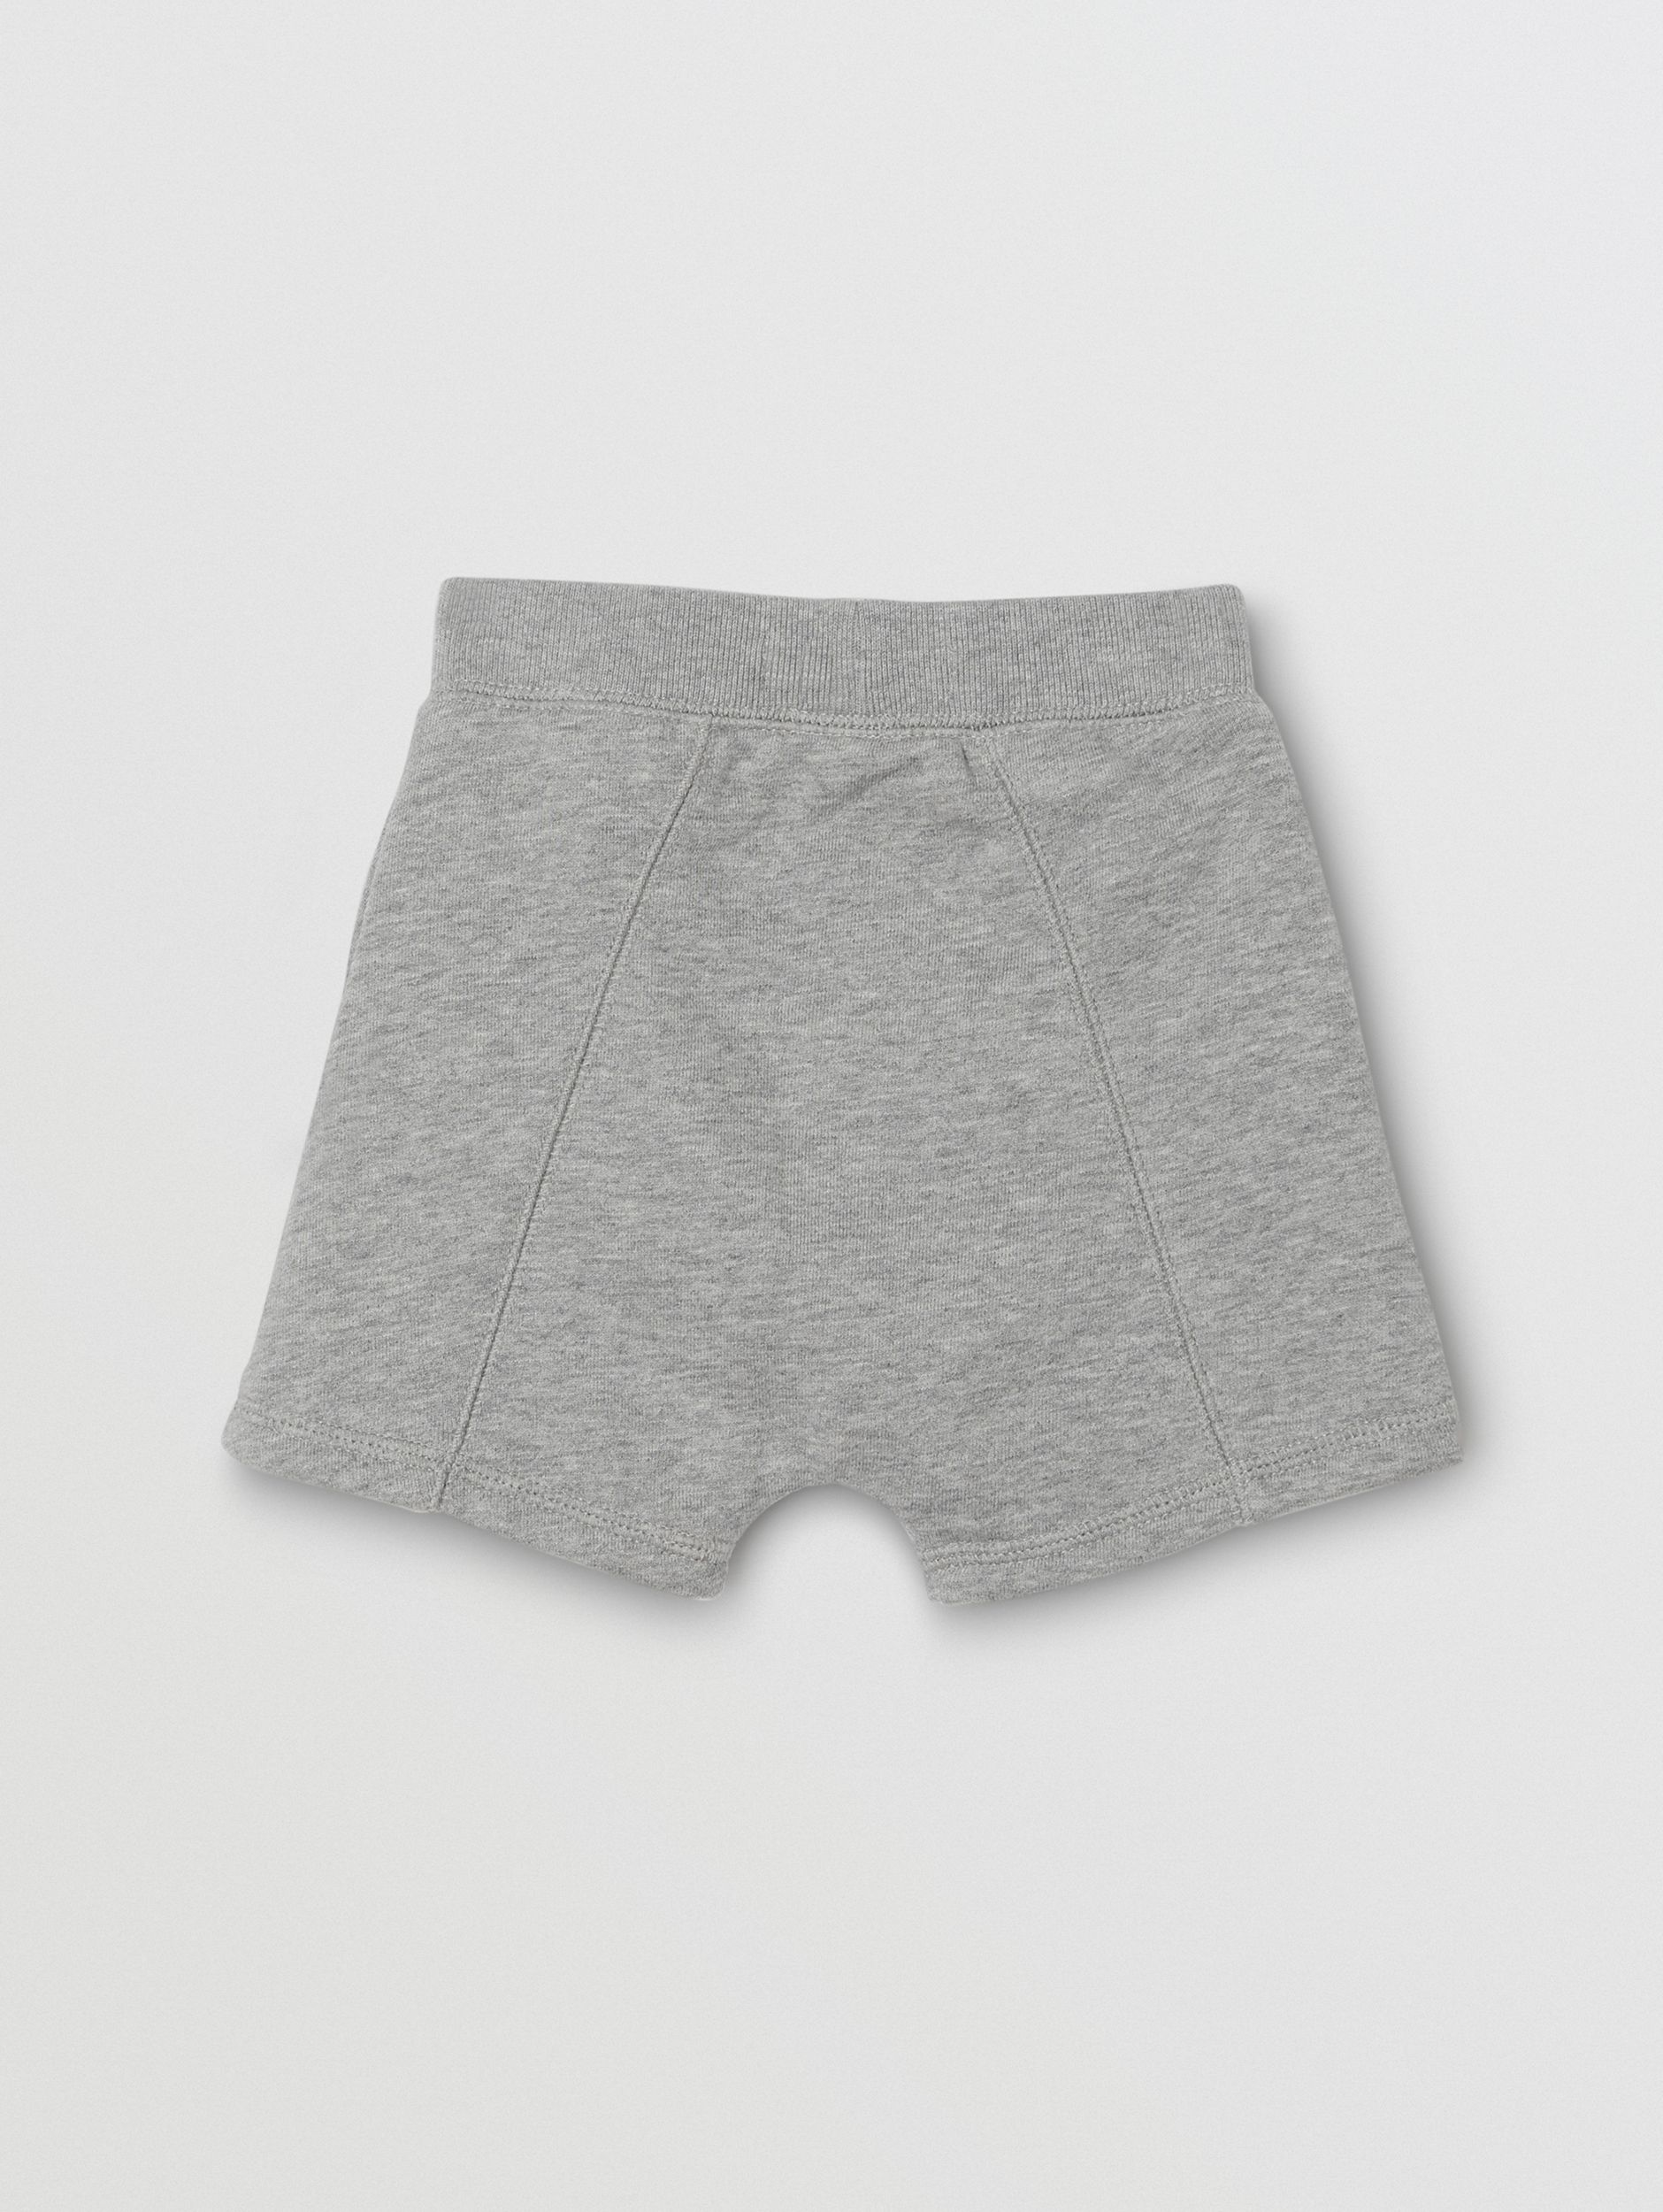 Logo Detail Cotton Drawcord Shorts in Grey Melange - Children | Burberry - 4